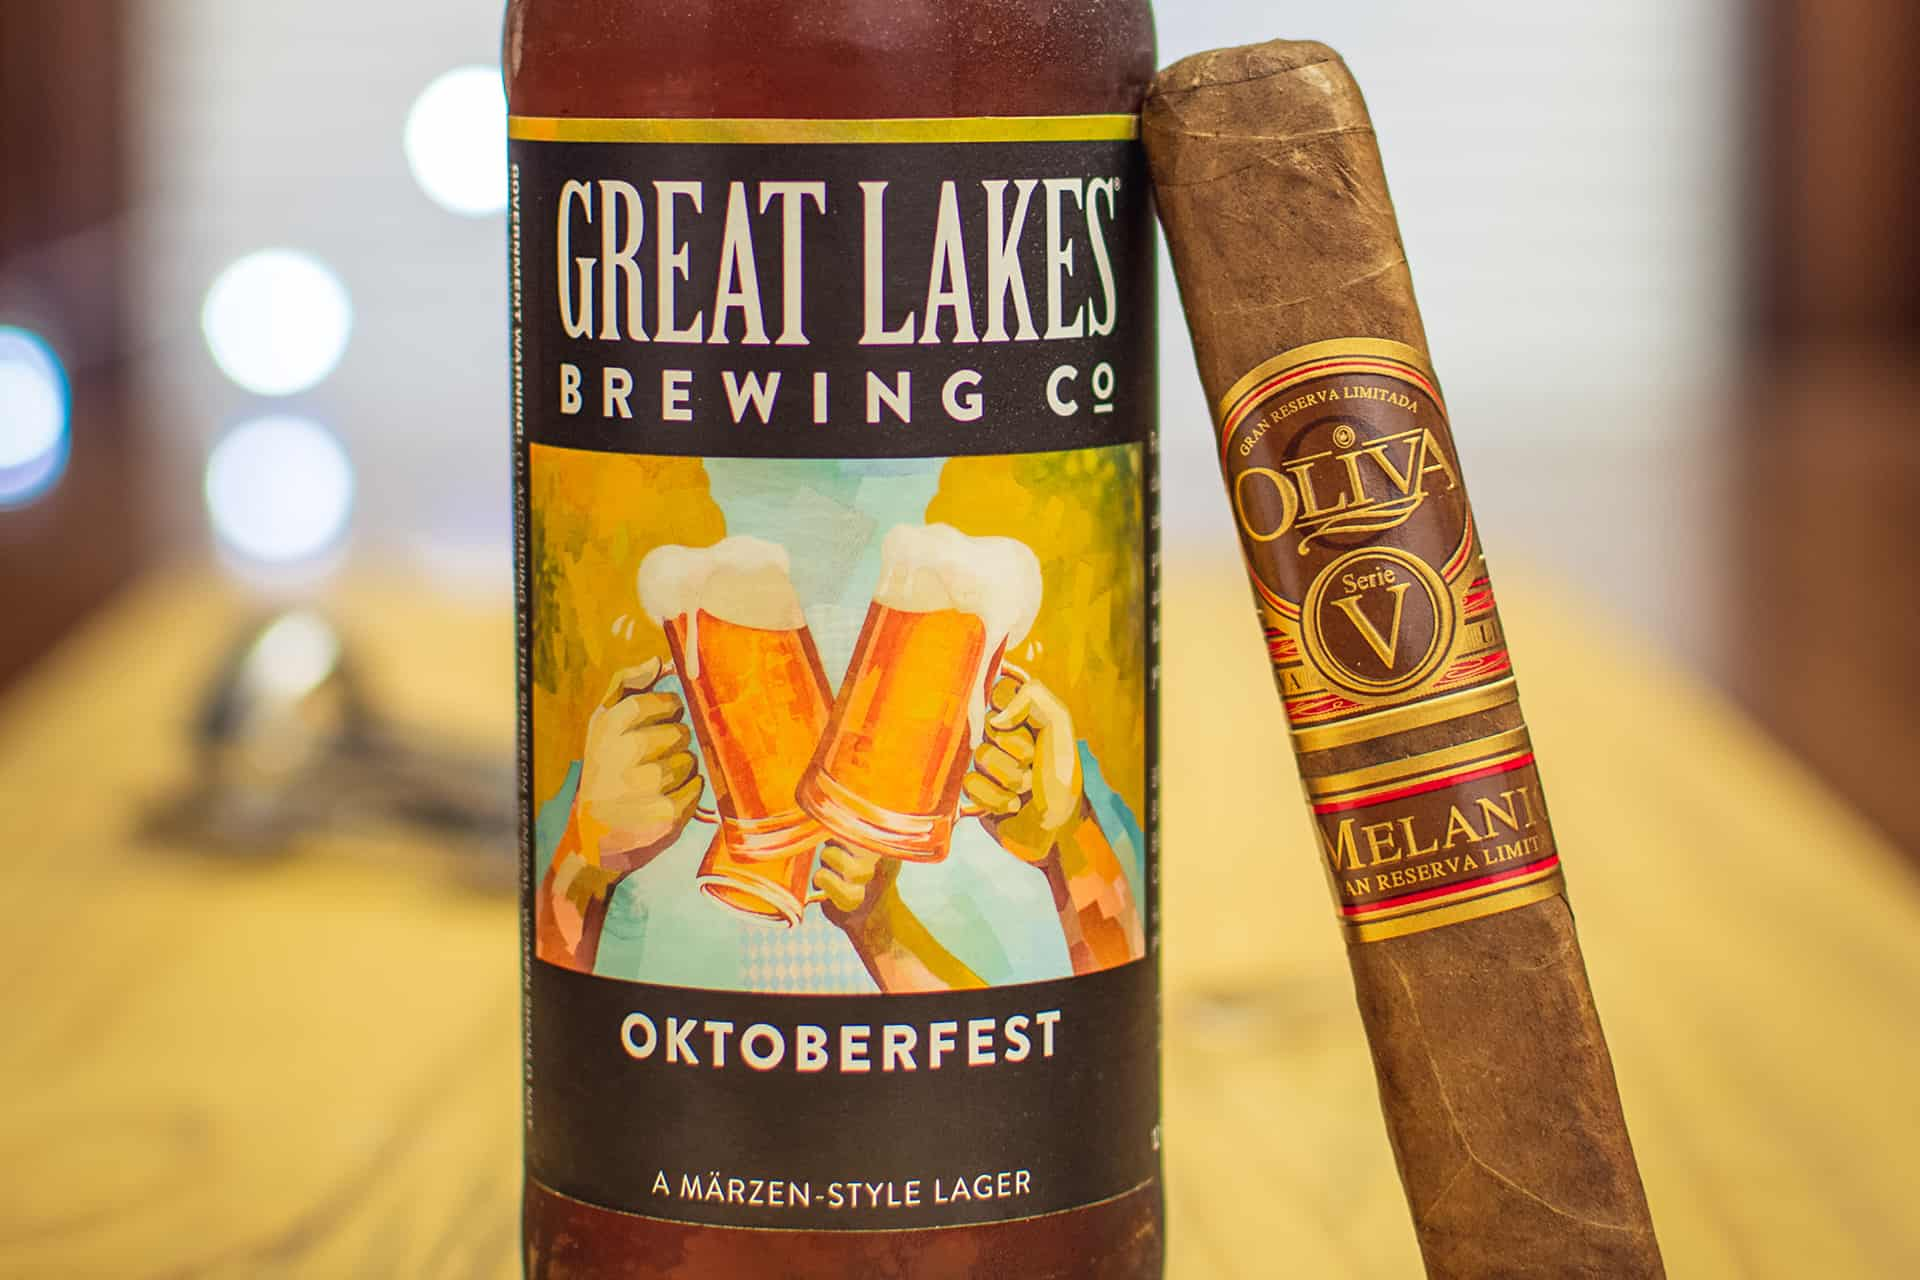 Great Lakes Brewing Co Oktoberfest Oliva Serie V Melanio Pairing